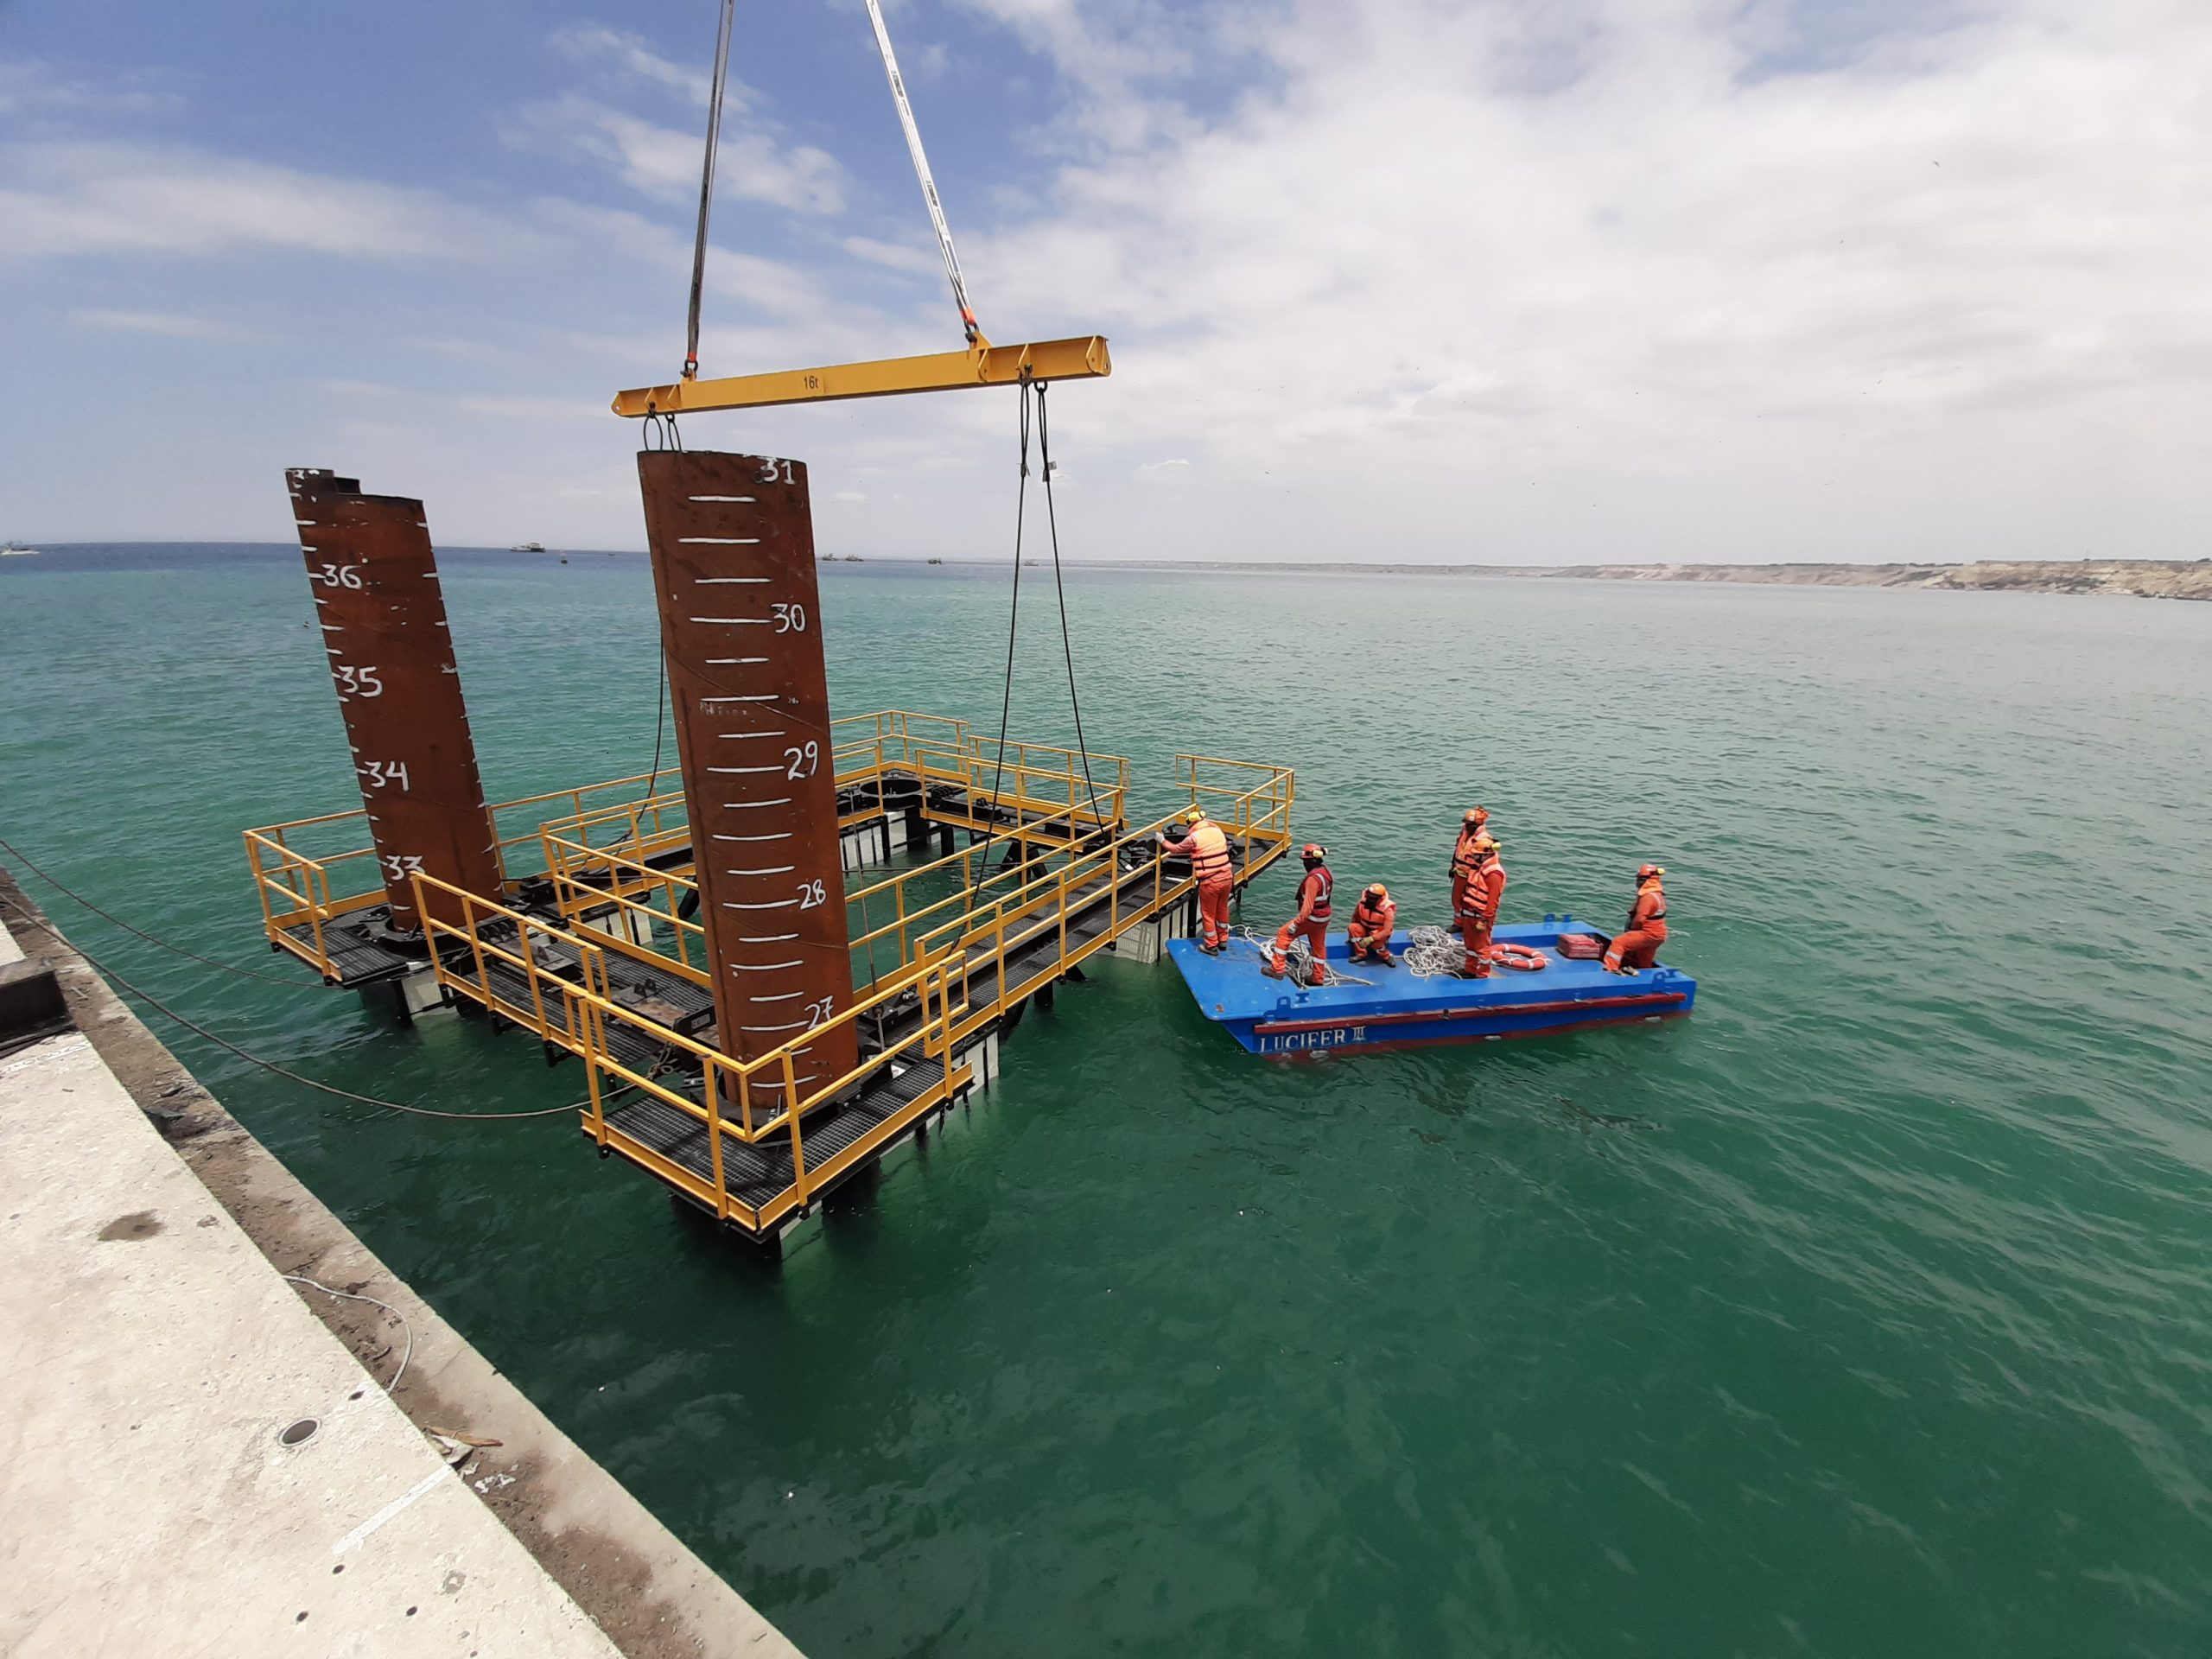 Pile guiding formwork equipment for Paita port by RÚBRICA MARITIME